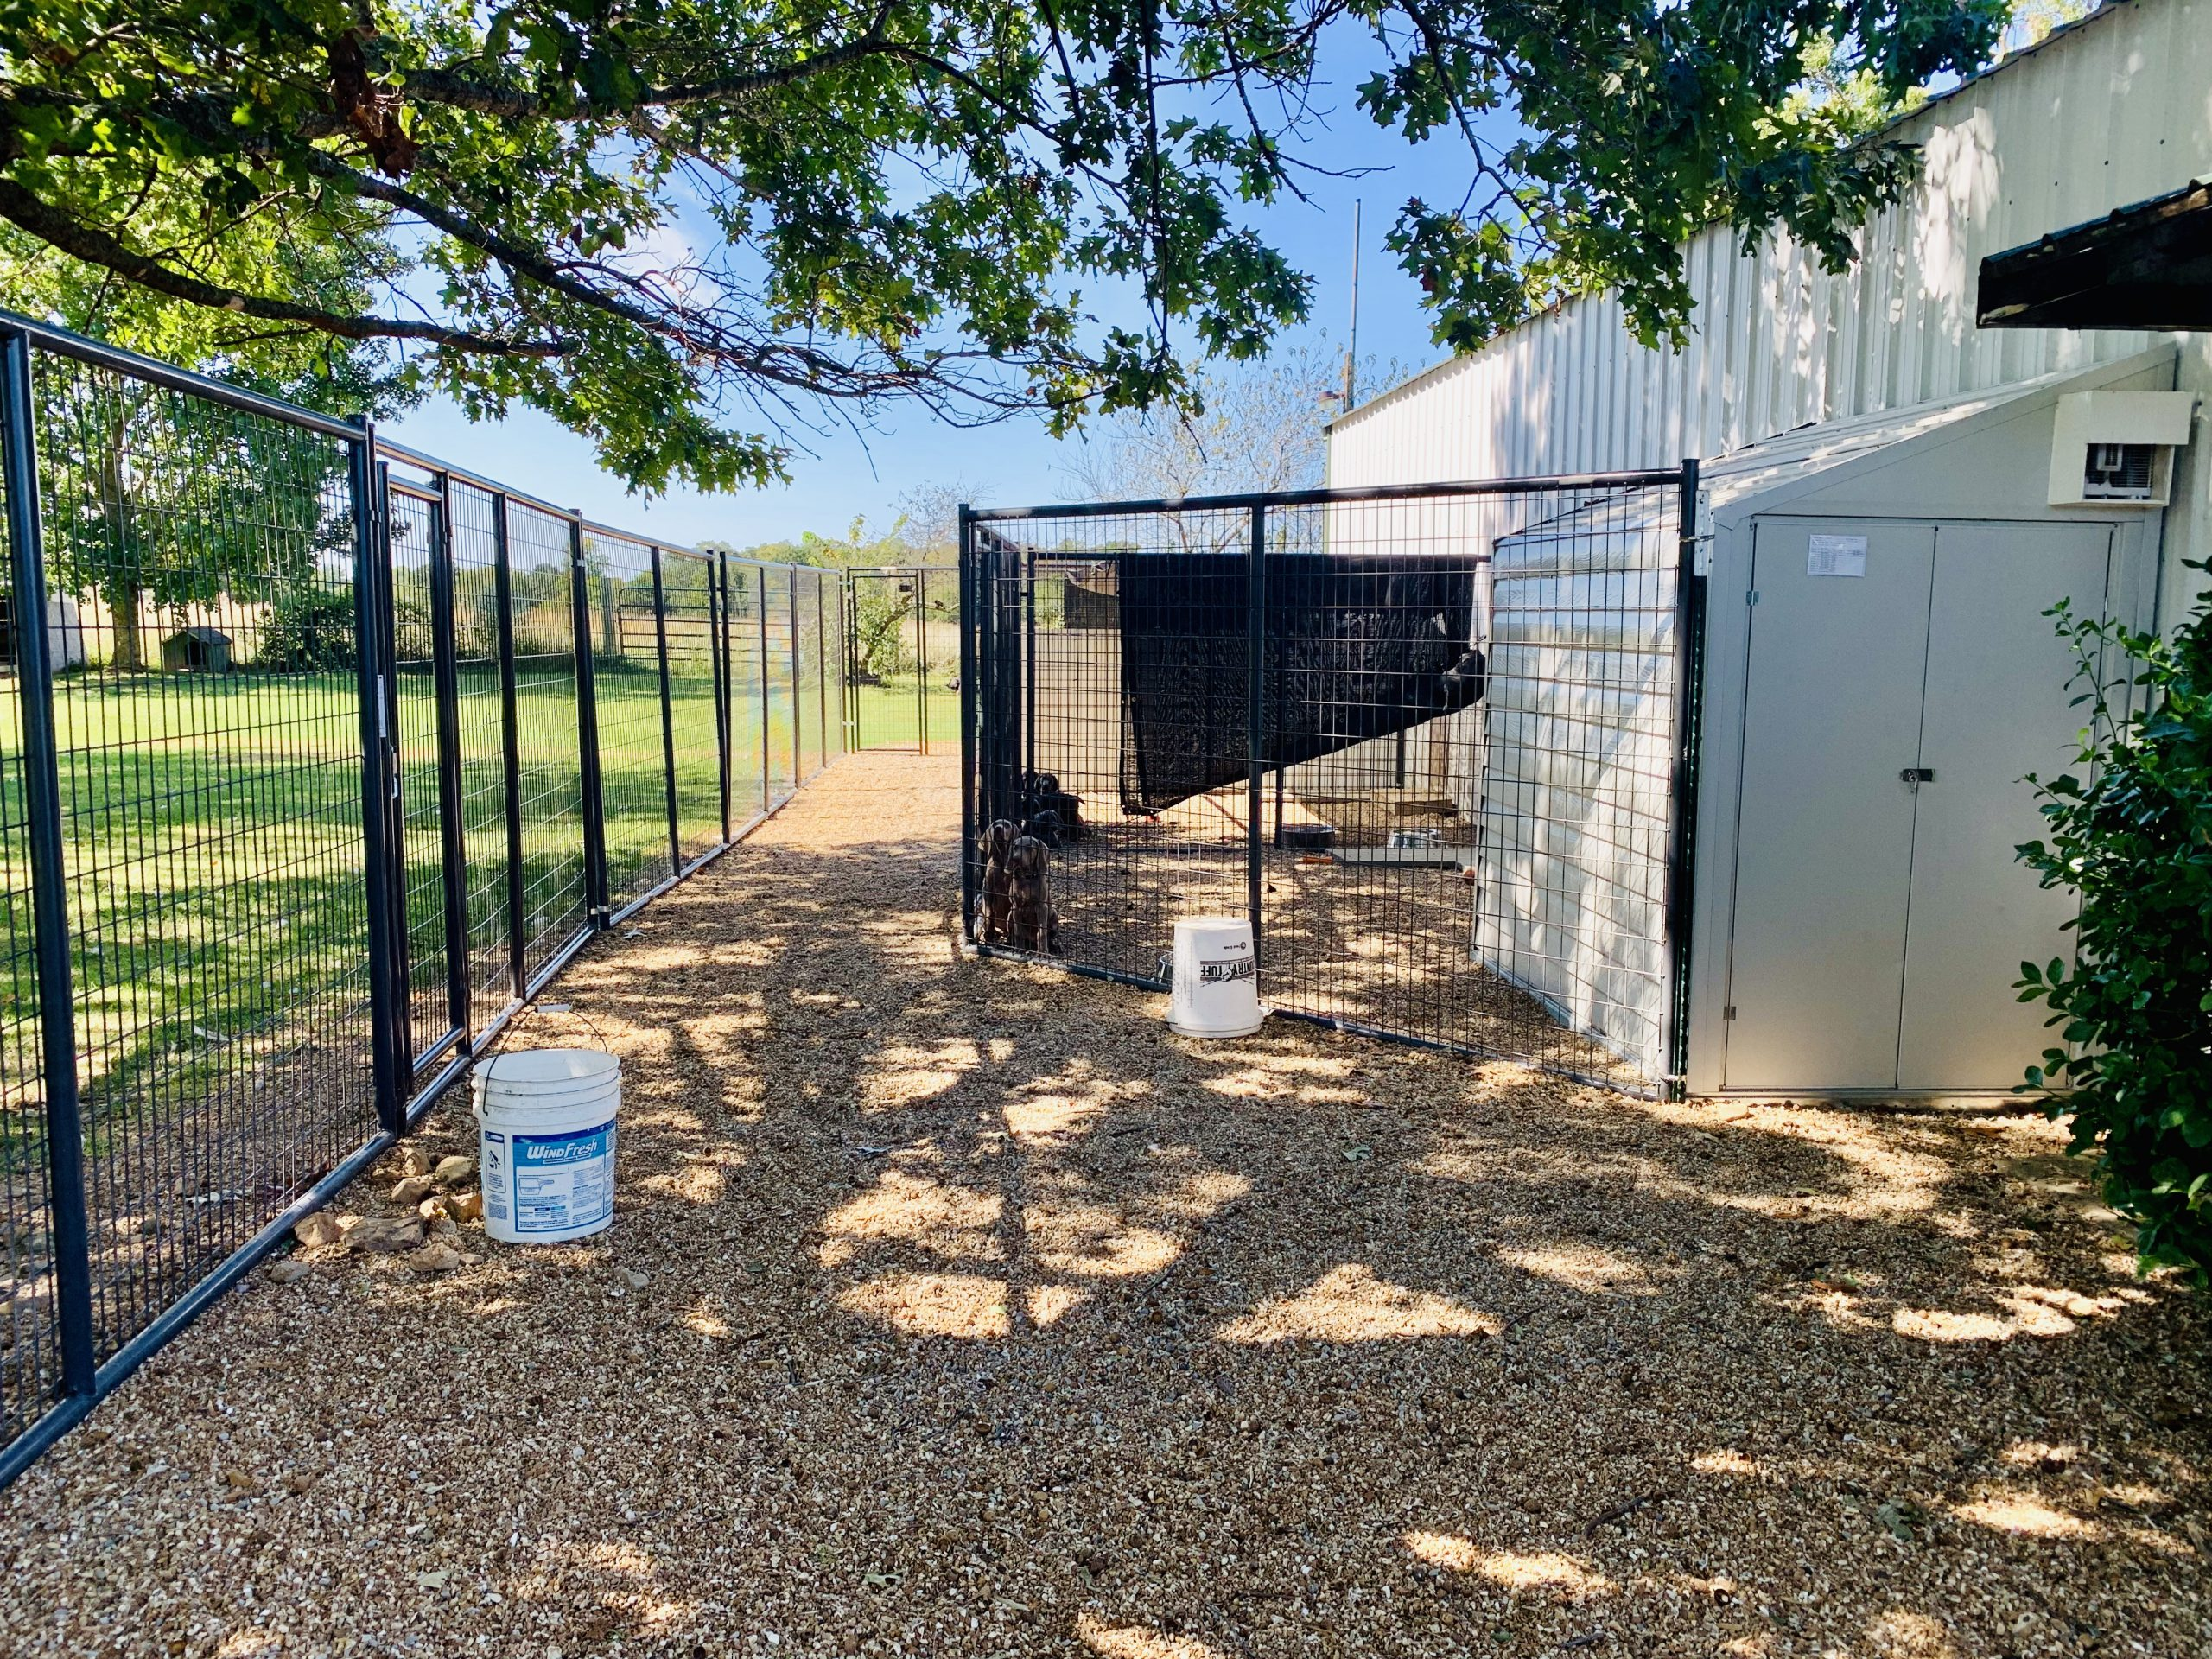 A view of Cindy's kennel